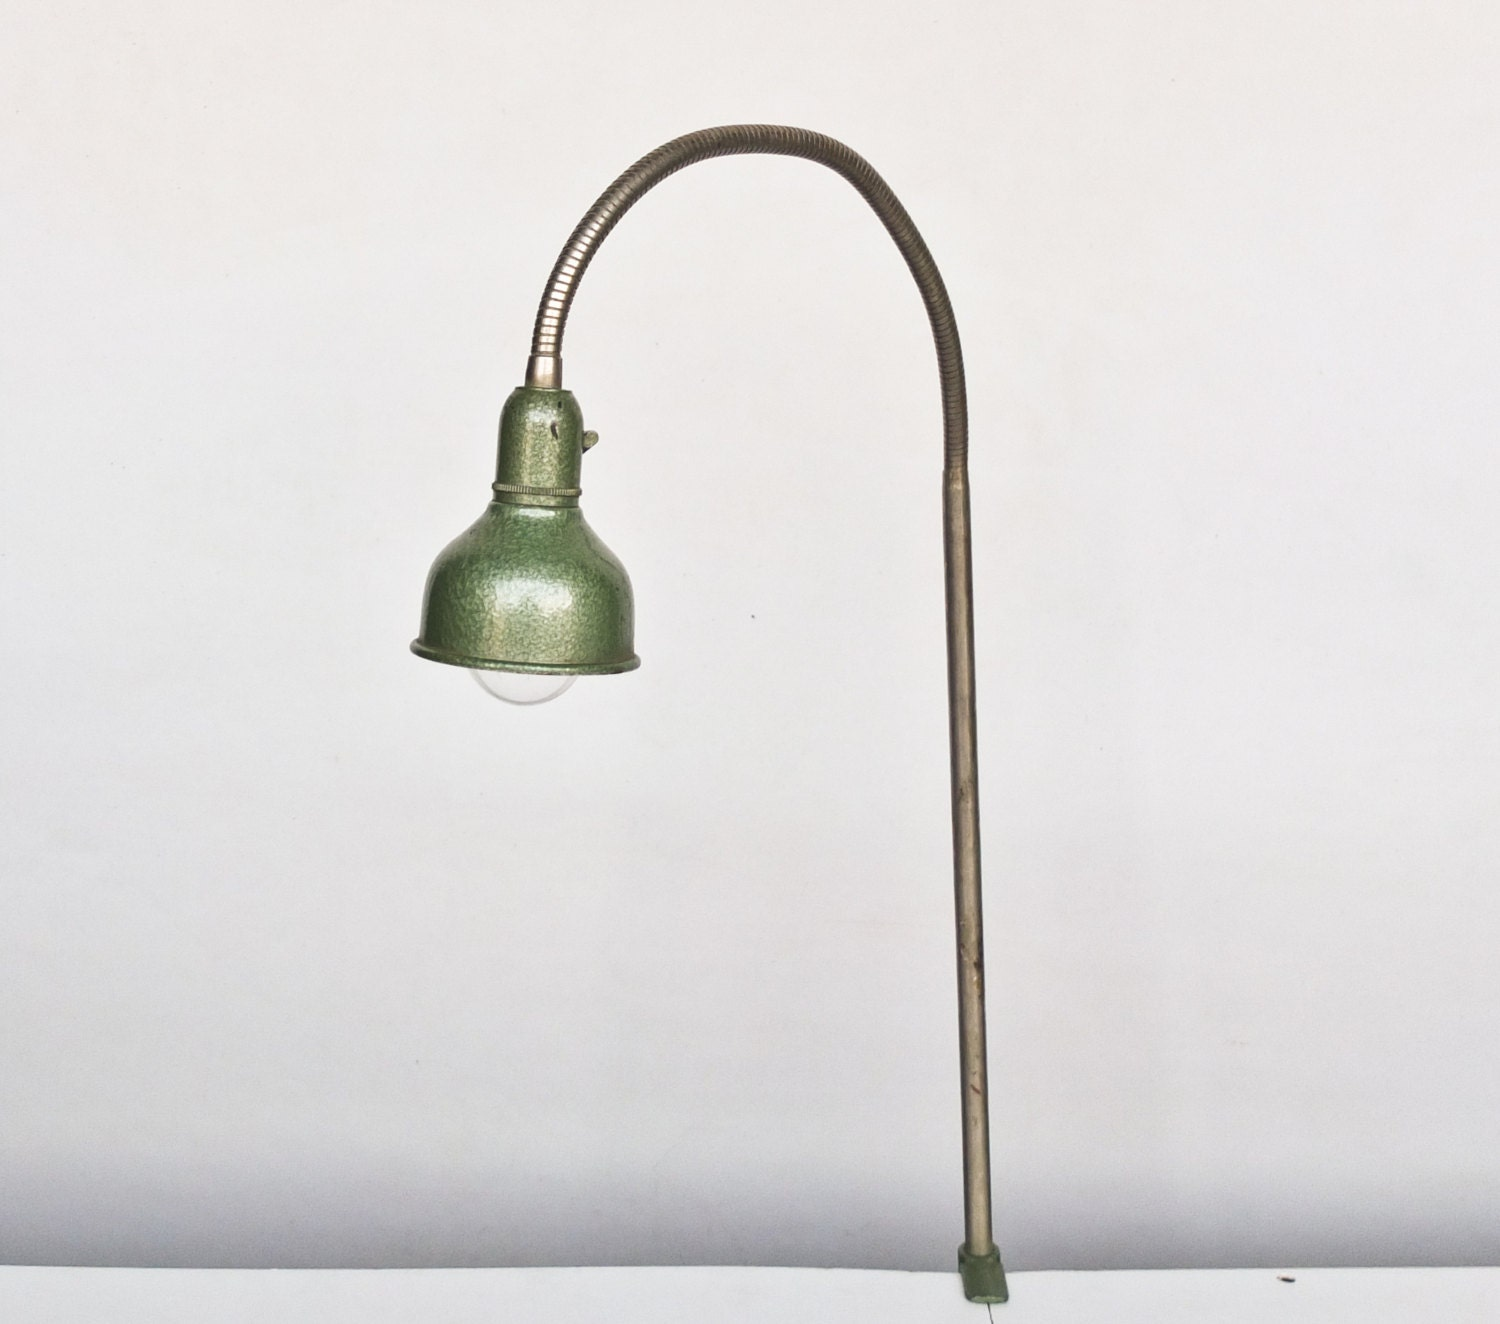 Workbench Lights Vintage: Vintage Clamp On Desk Light / Gooseneck Work Lamp